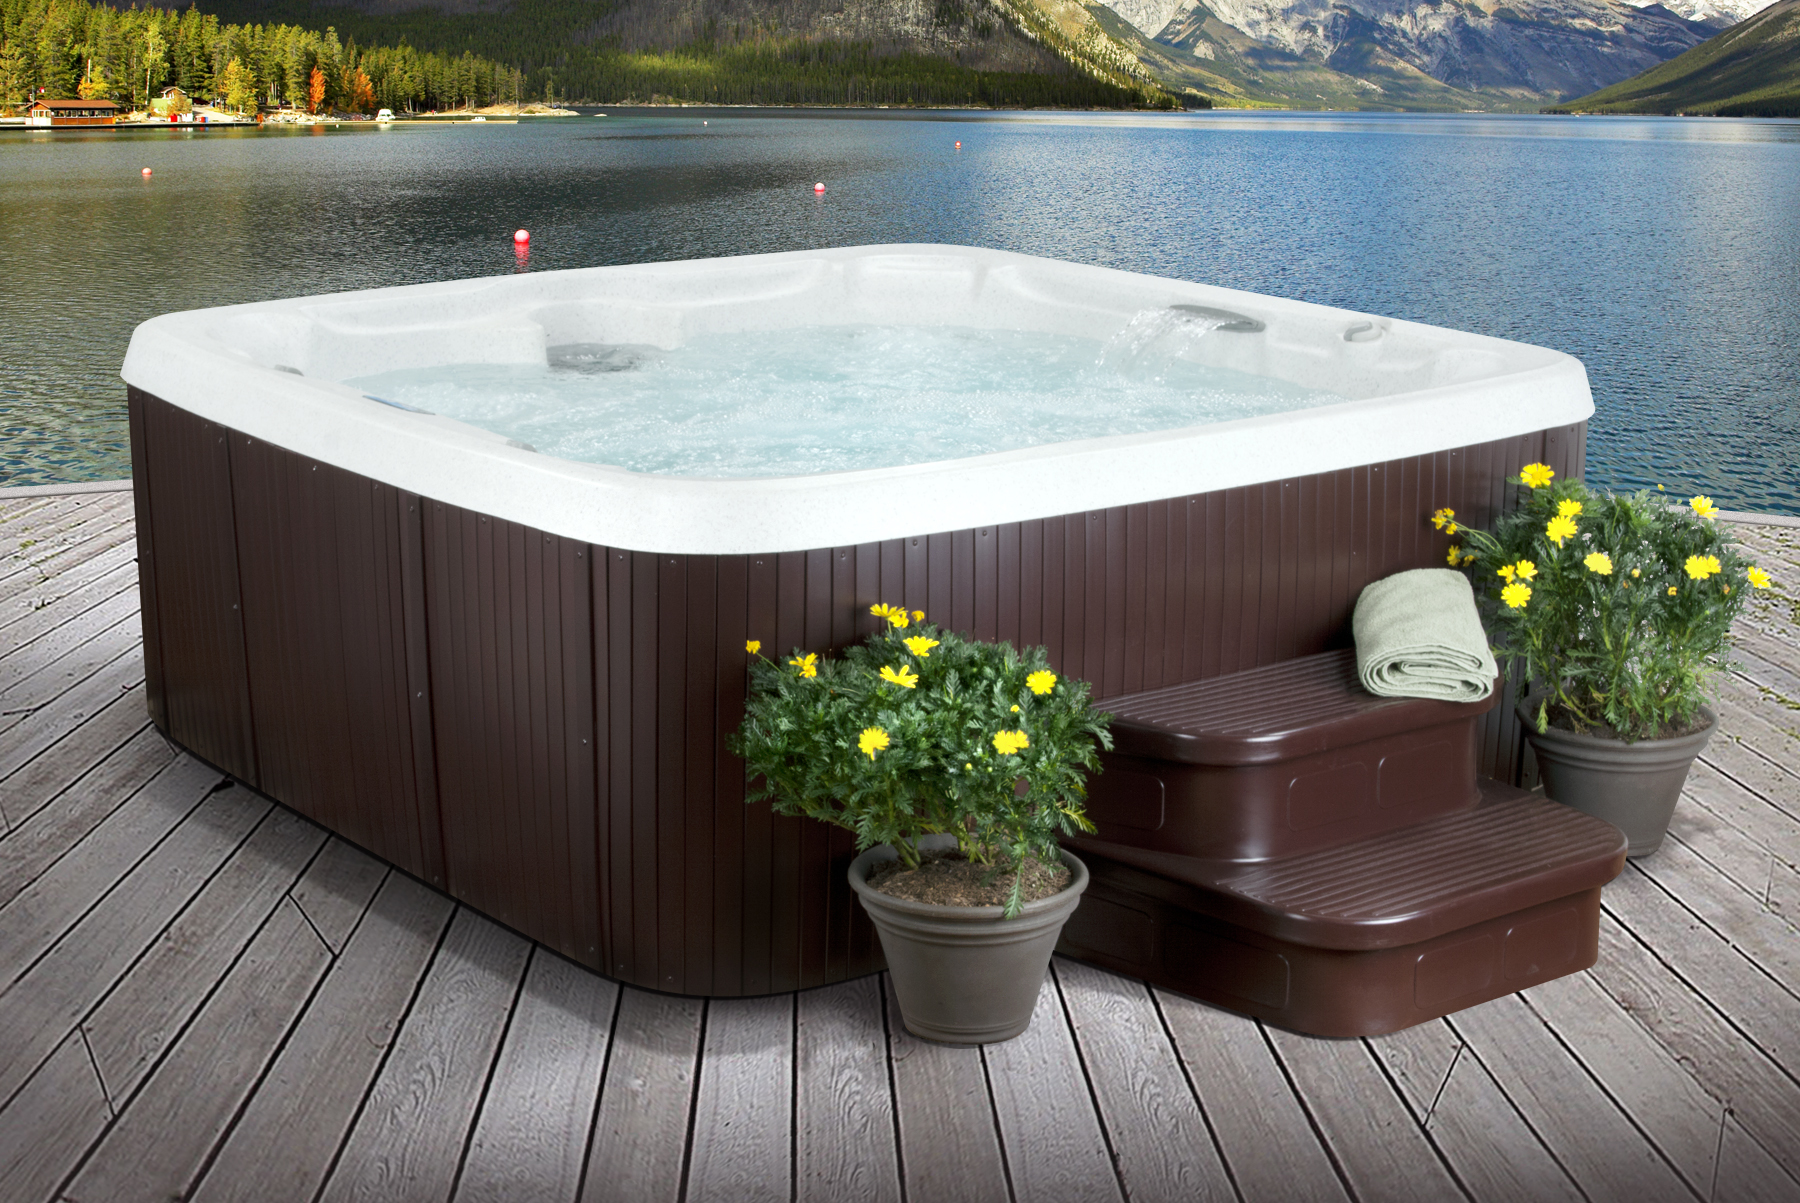 Hot Tub Covers Motorized Blinds Price Images Hot Tub Spa